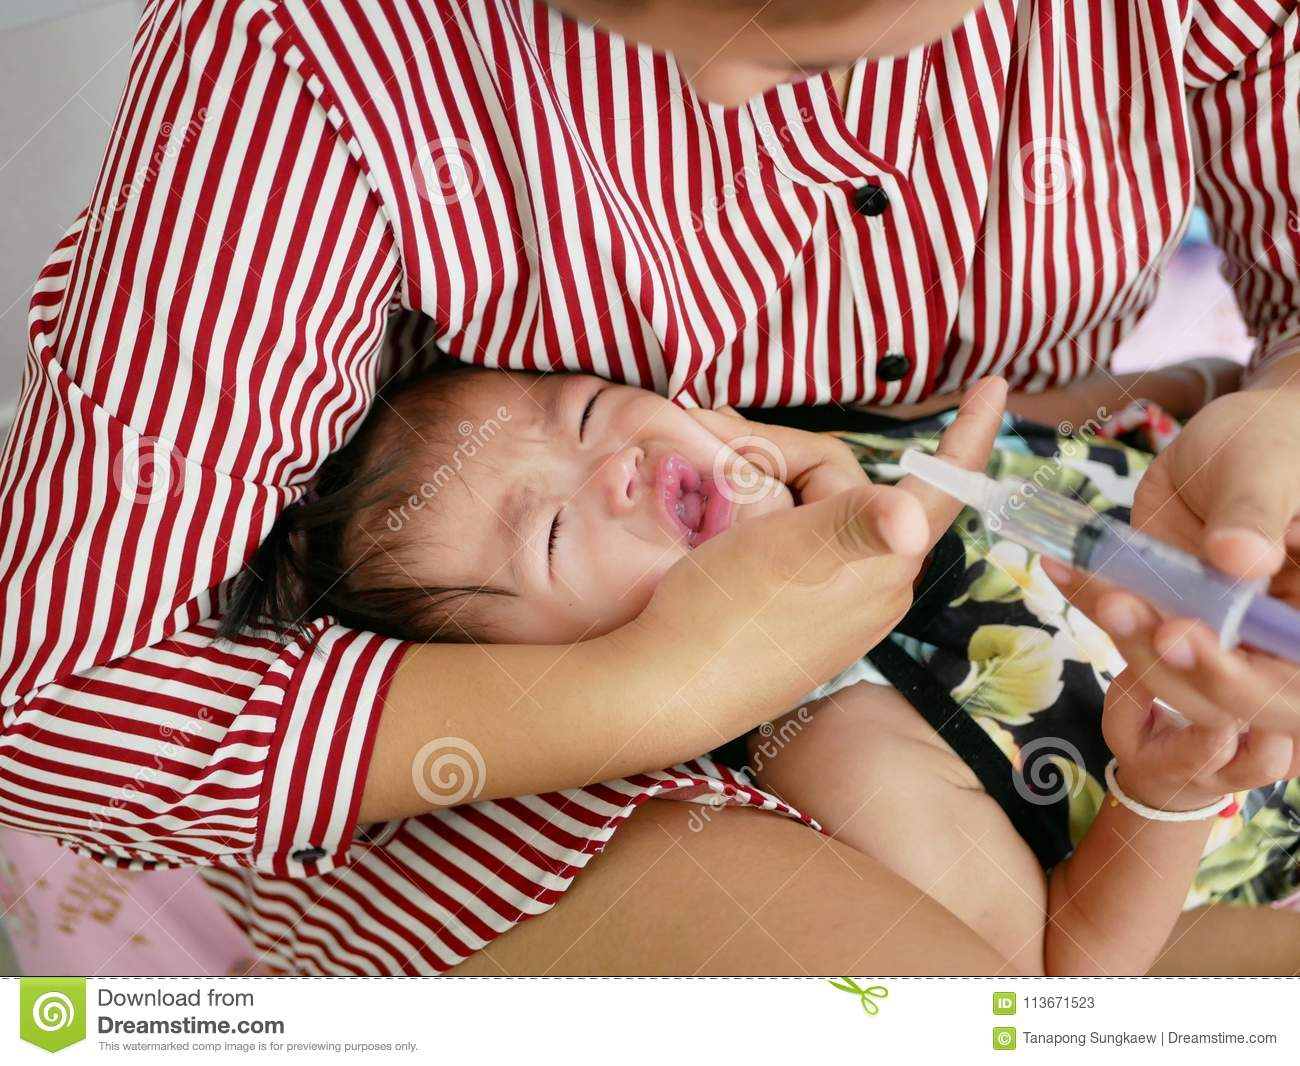 Asian mother`s arm wrapping around her crying baby girl`s face forcing the baby to take liquid medicine